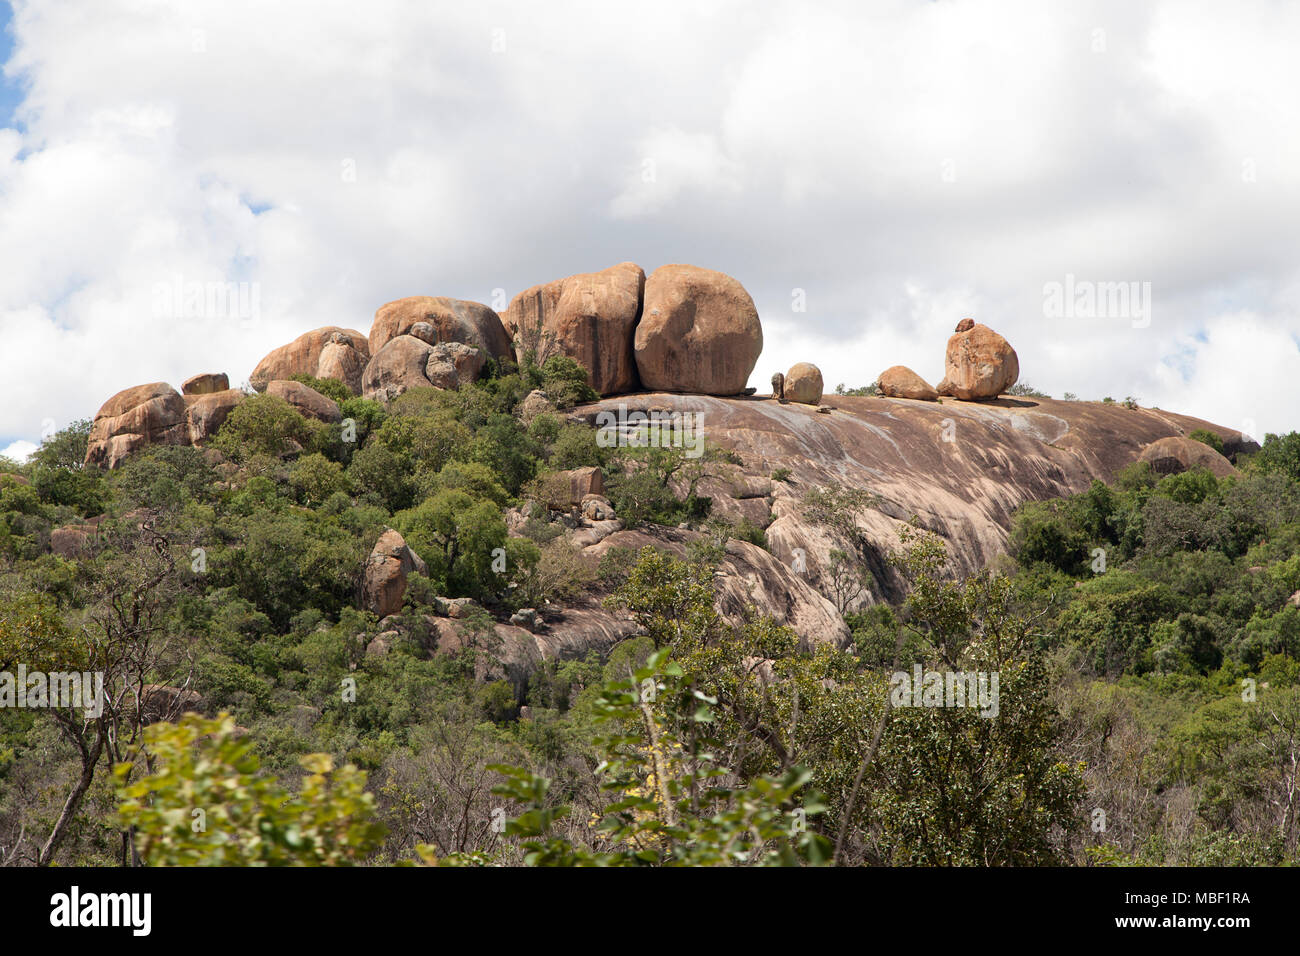 Boulders on a hilltop in Matobo National Park, Zimbabwe. - Stock Image